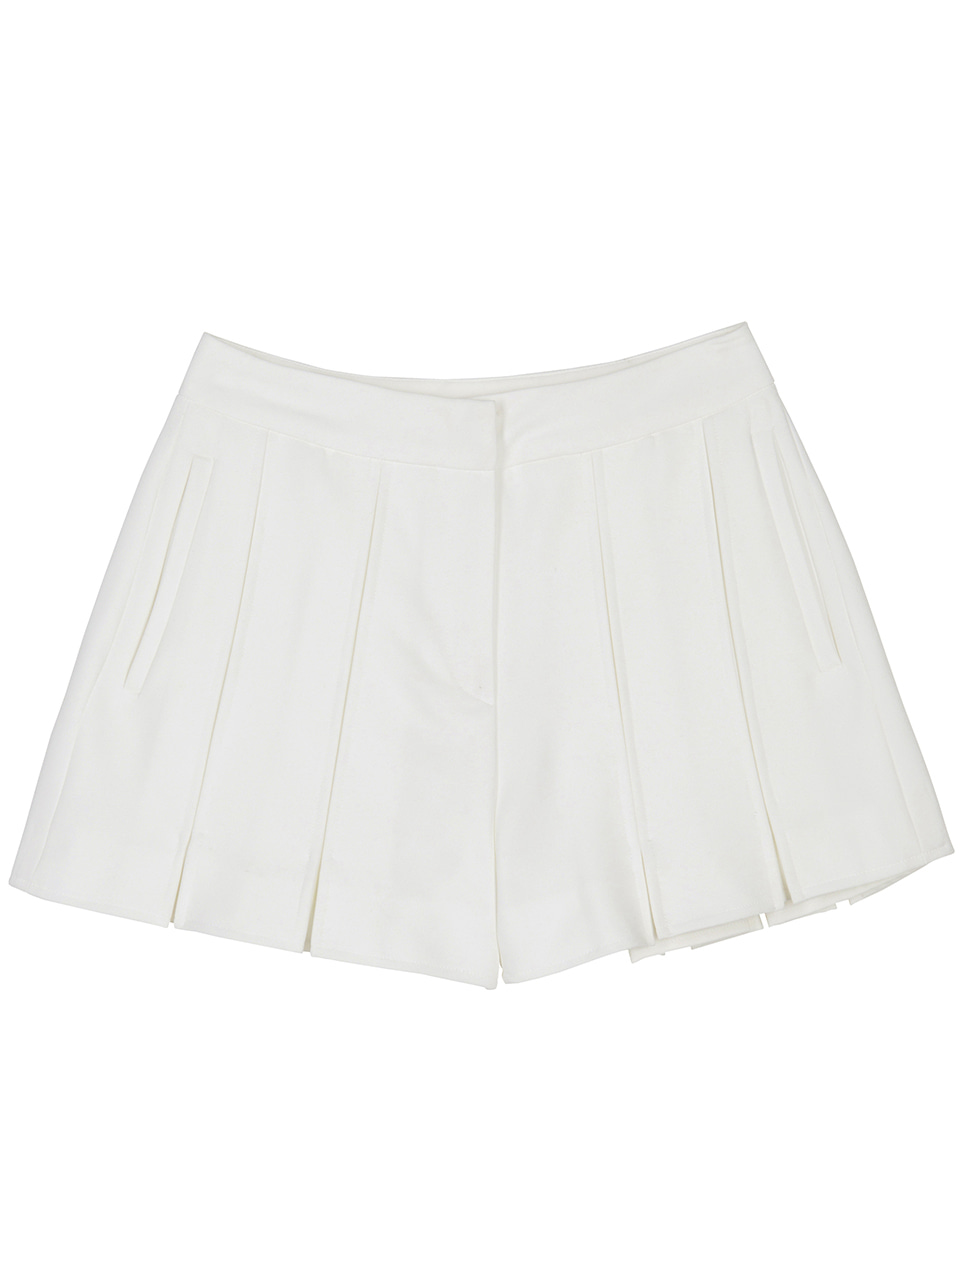 Slot Hem Shorts - white